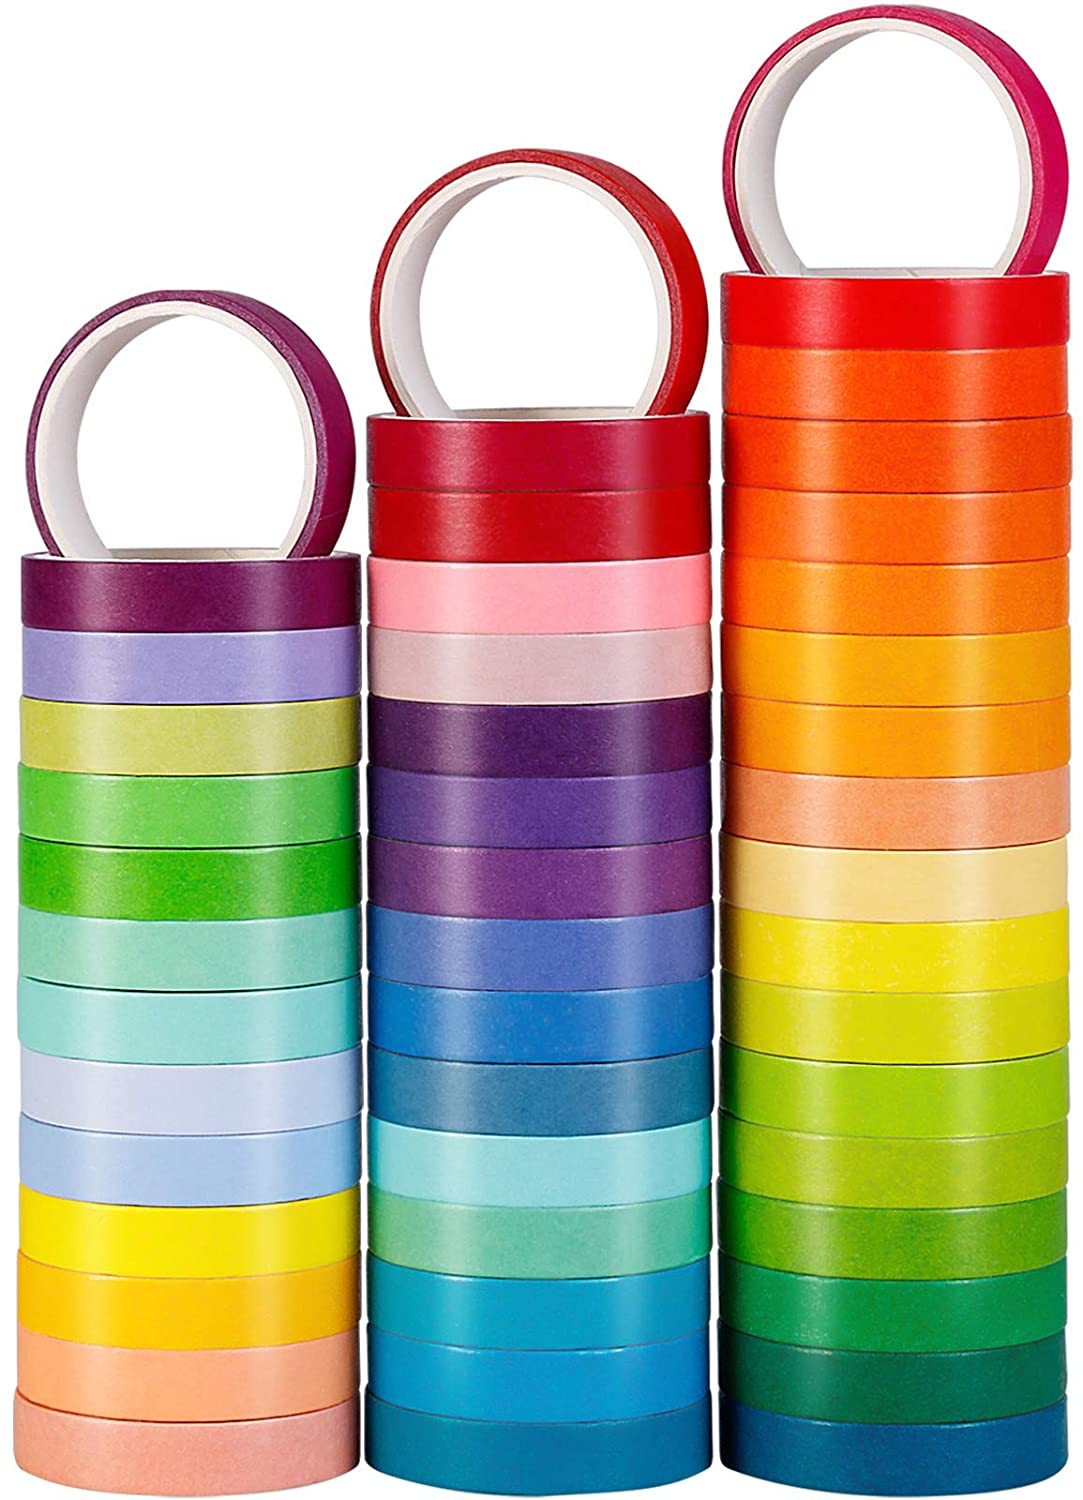 48 Sales of SALE items from new works Rolls Washi Tape Set Color Wash Colorful Free shipping anywhere in the nation Rainbow